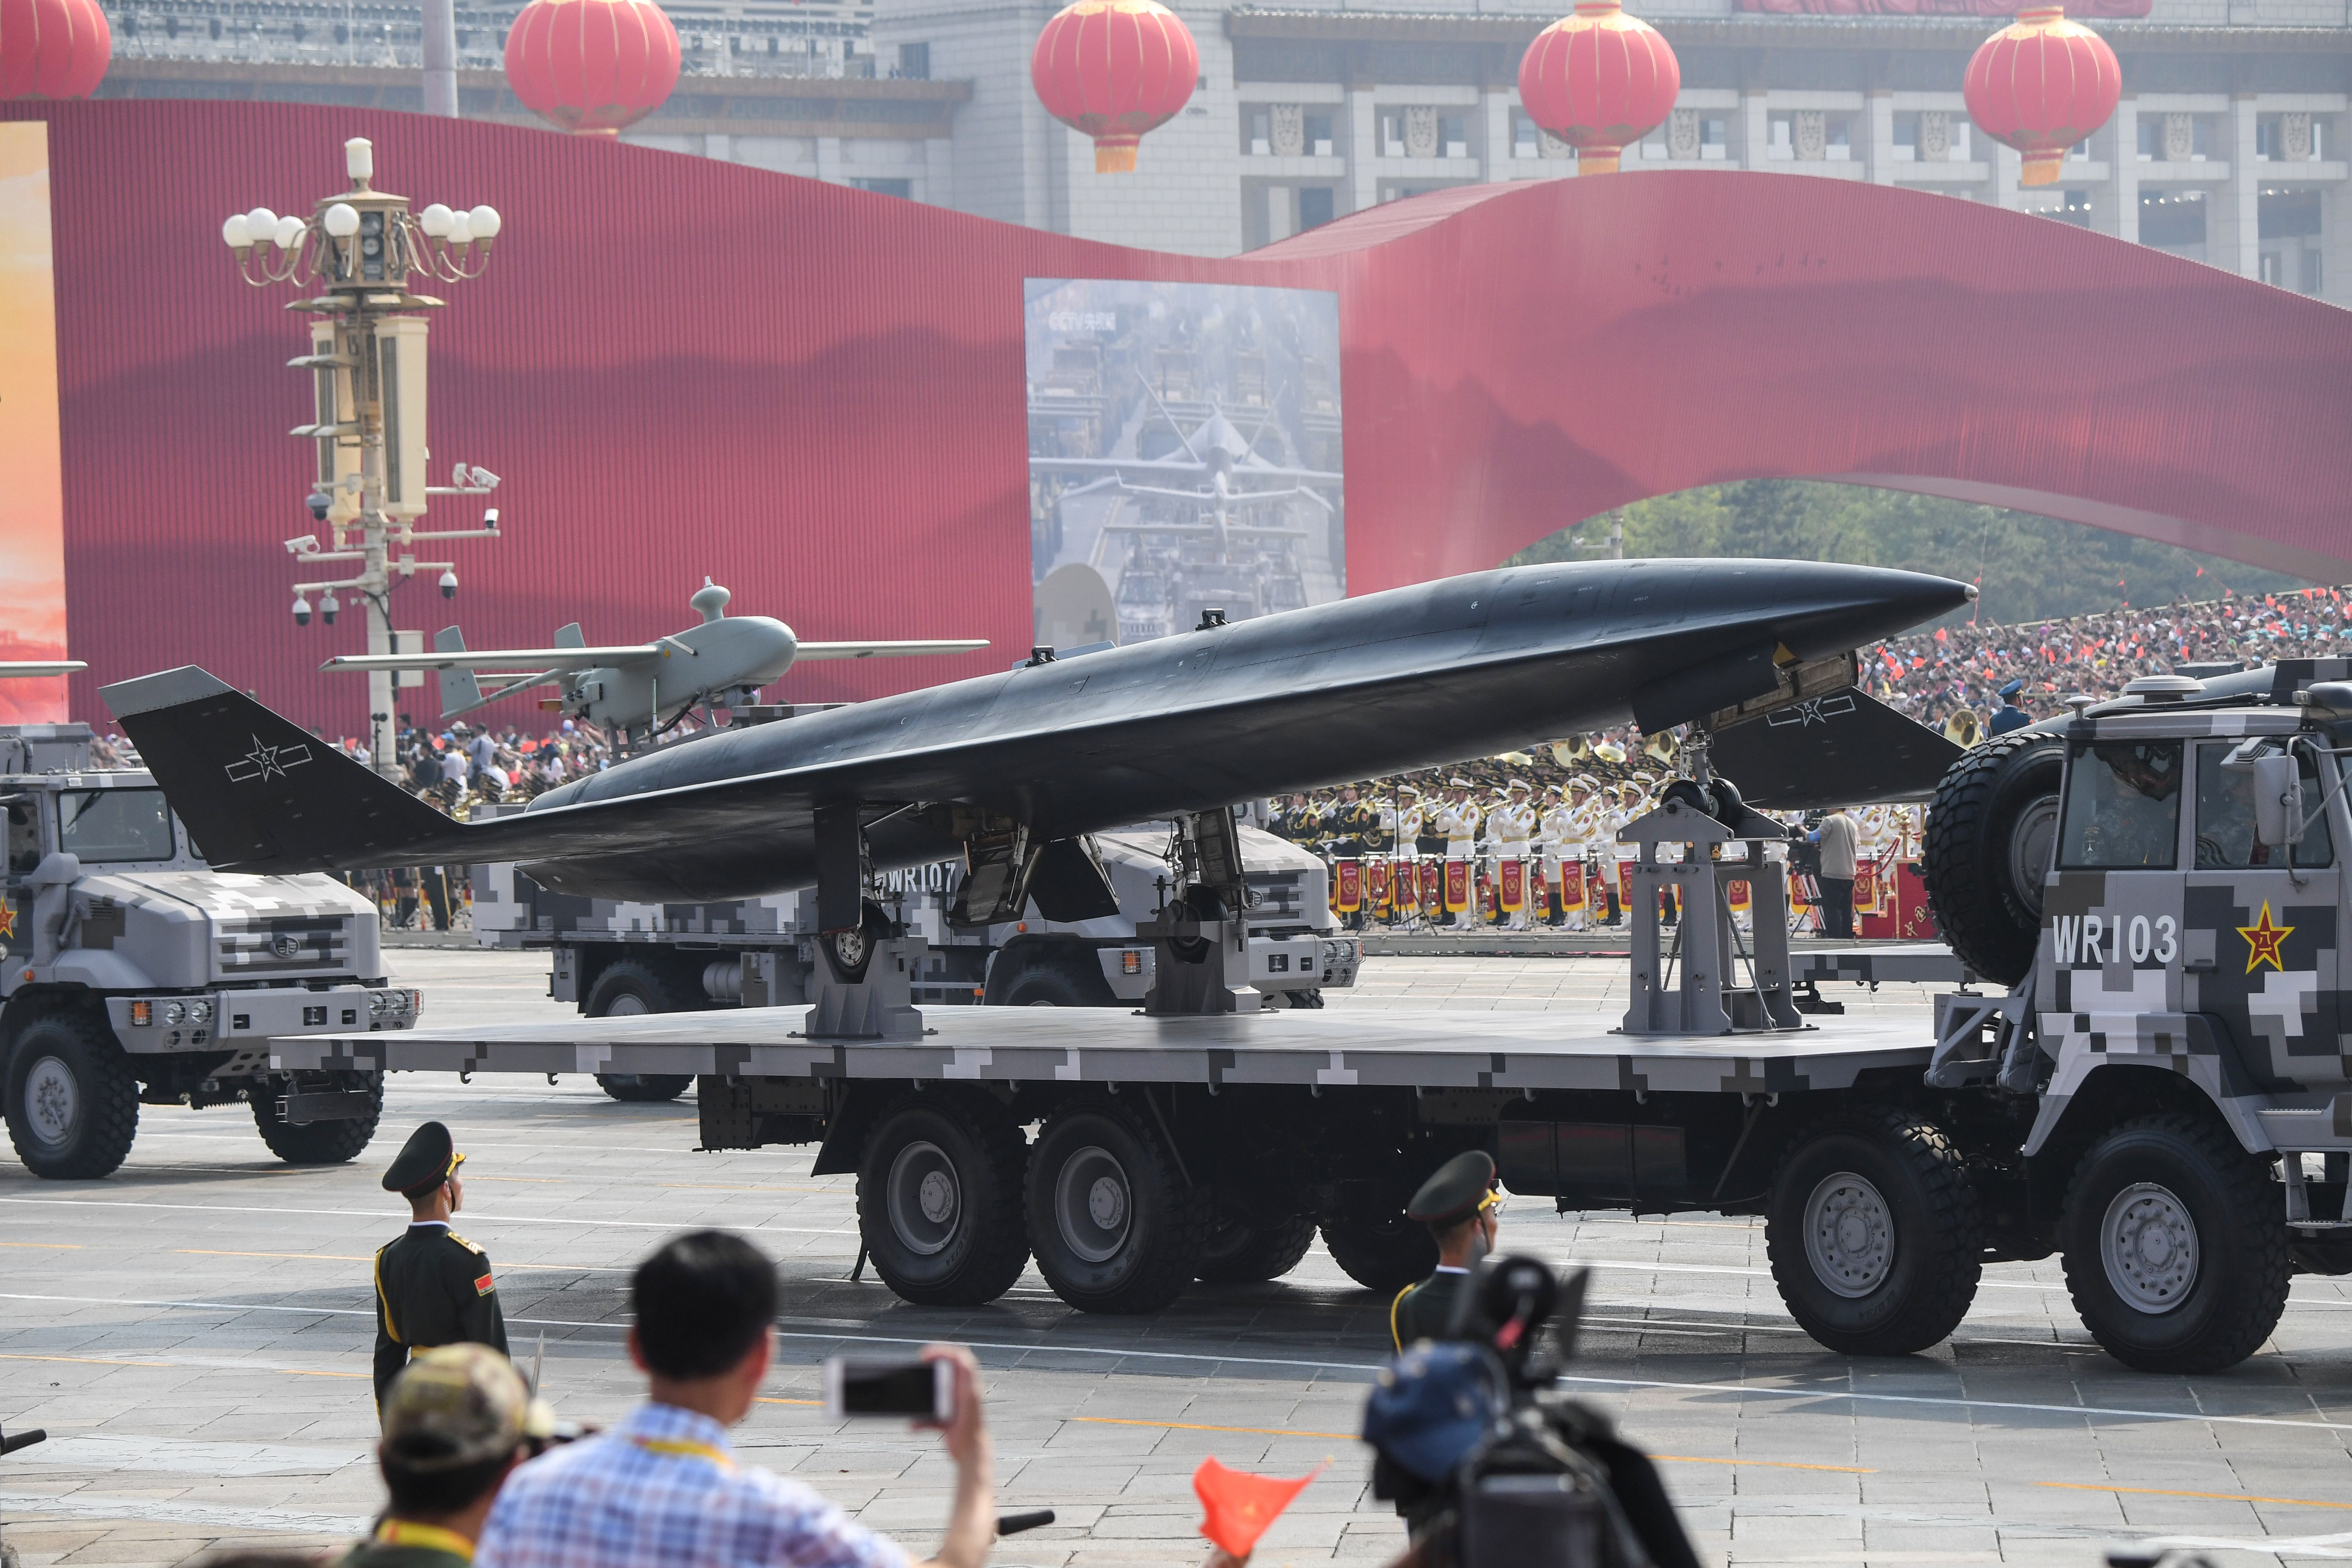 The WZ-8 made its debut at the parade. It's believed to be a high-speed platform capable of attaining supersonic flight. (Greg Baker/AFP via Getty Images)